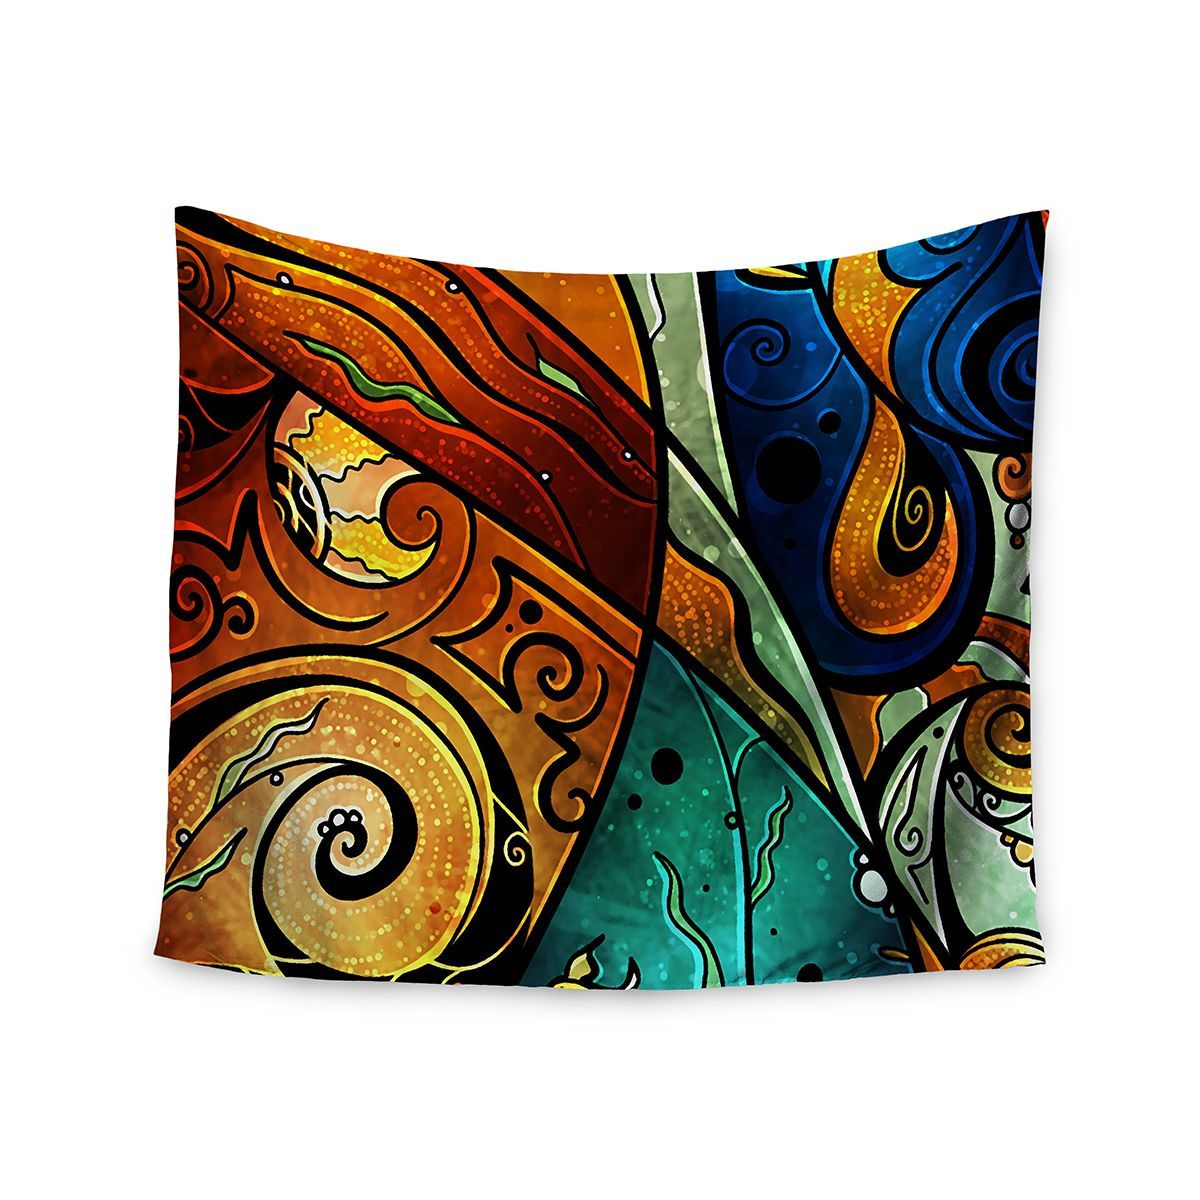 51 x 60 Kess InHouse Mandie Manzano Sea Dance Blue Orange Wall Tapestry